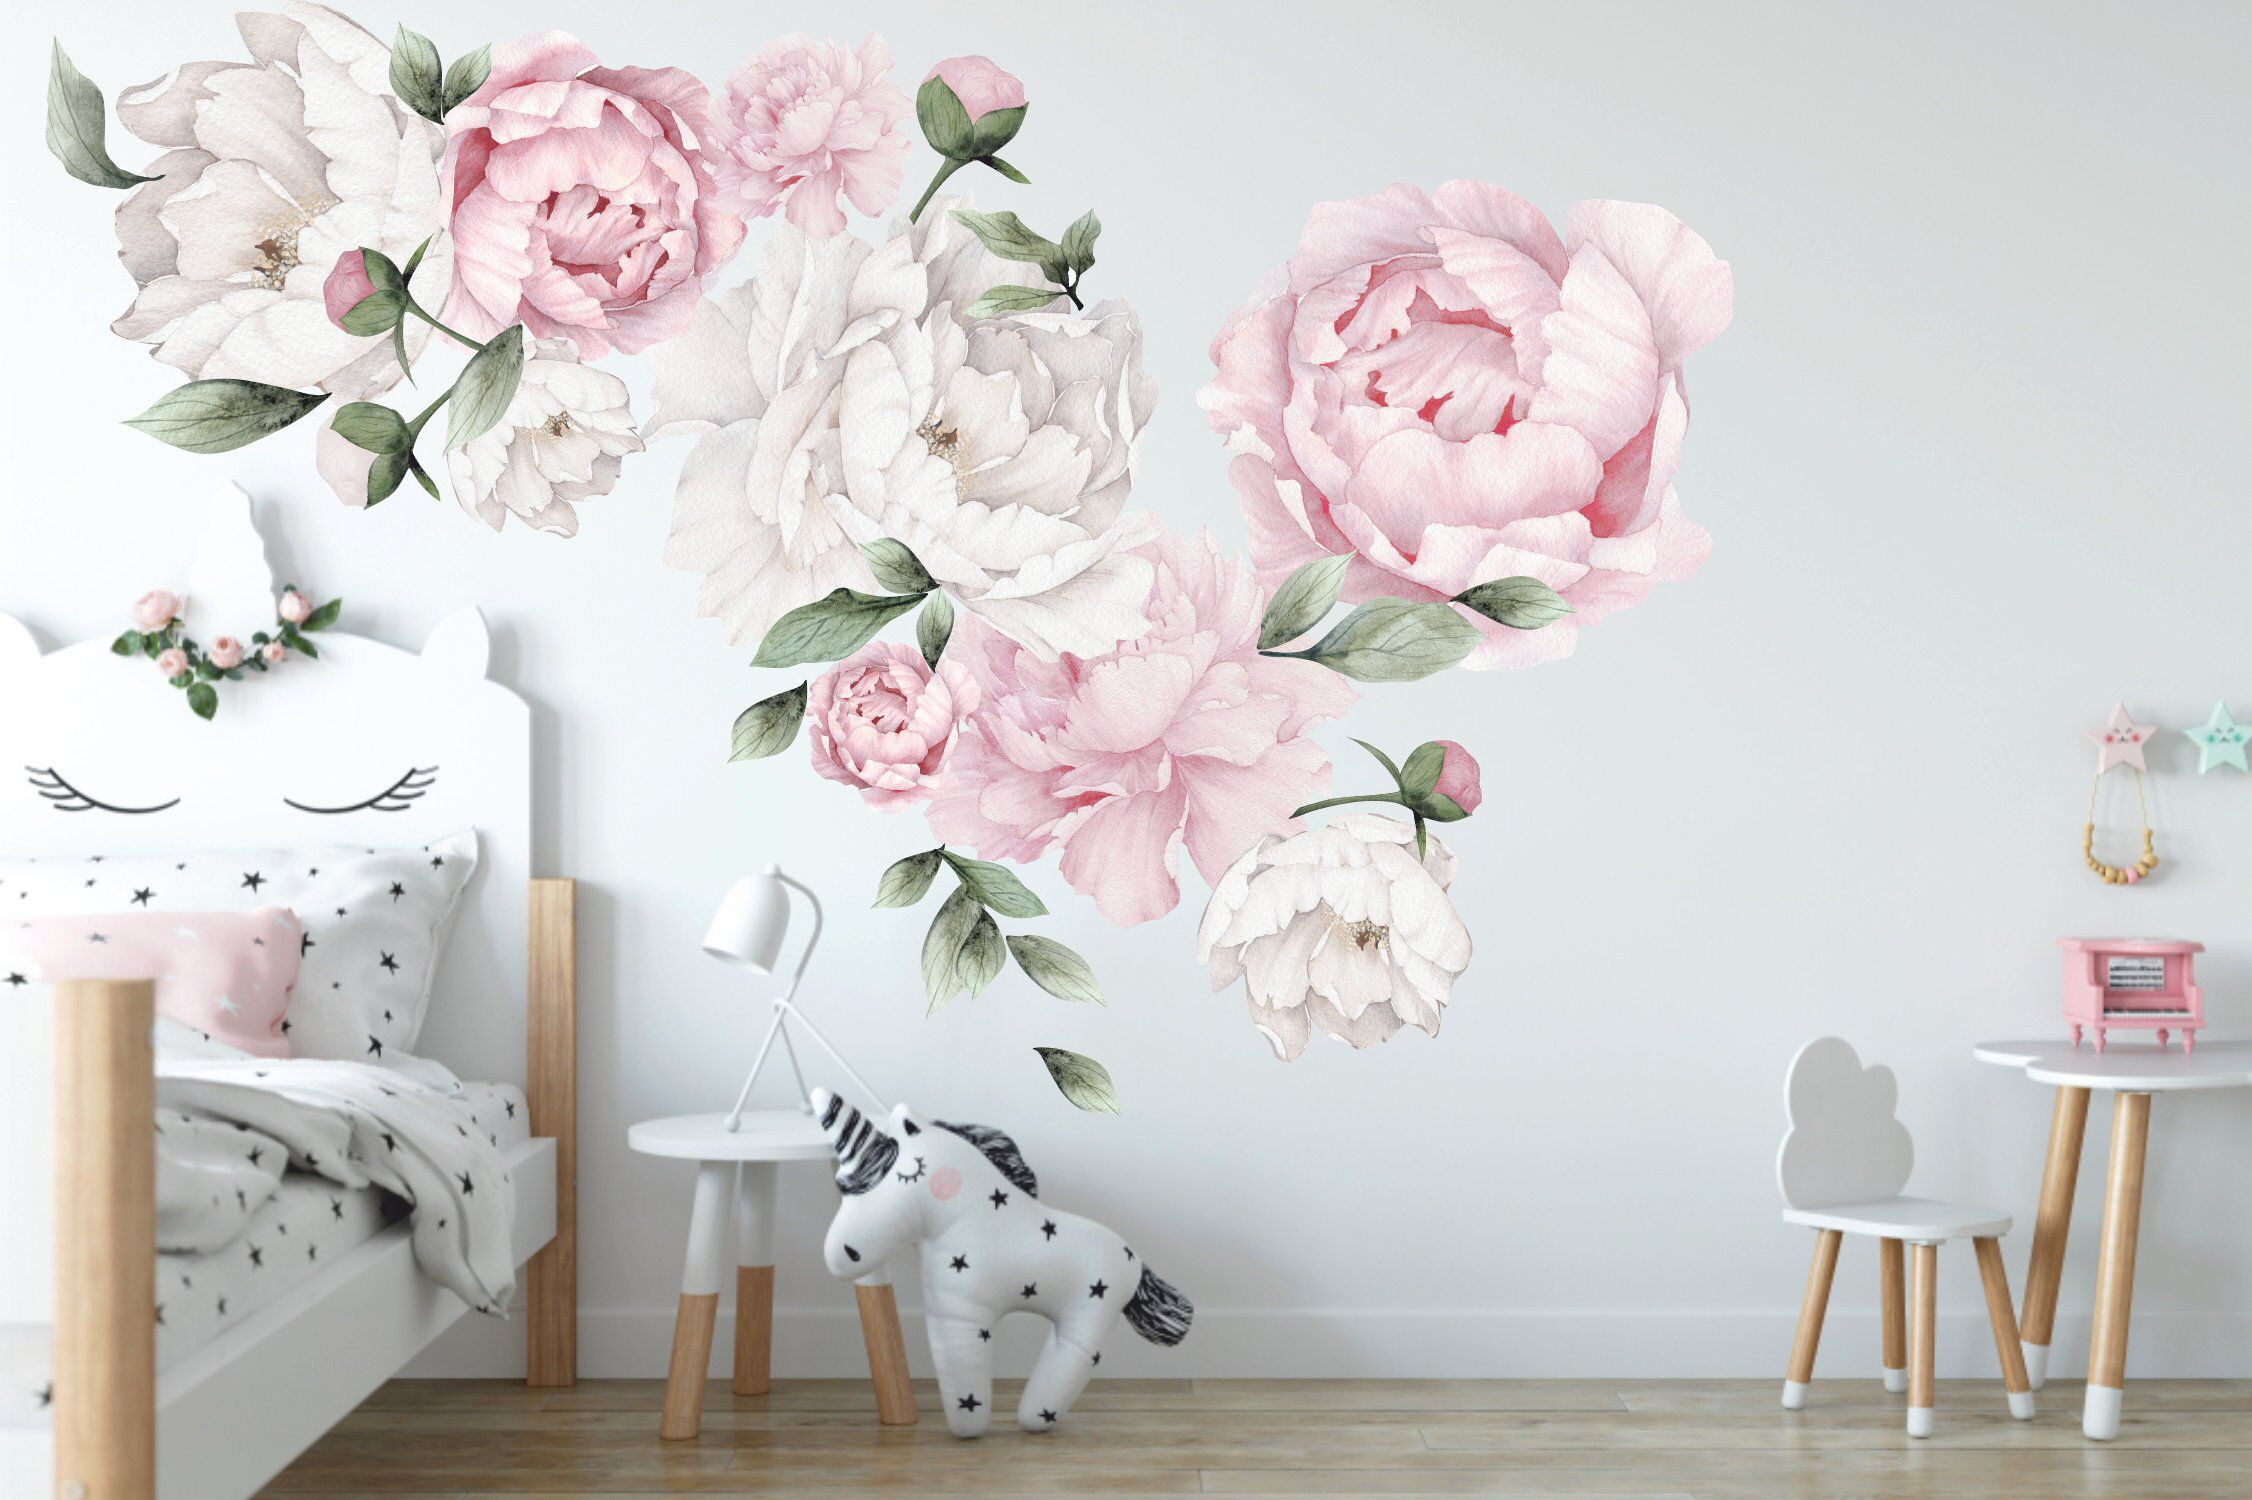 Pin By Jasmine Glover On Spa With Images Flower Wall Decals